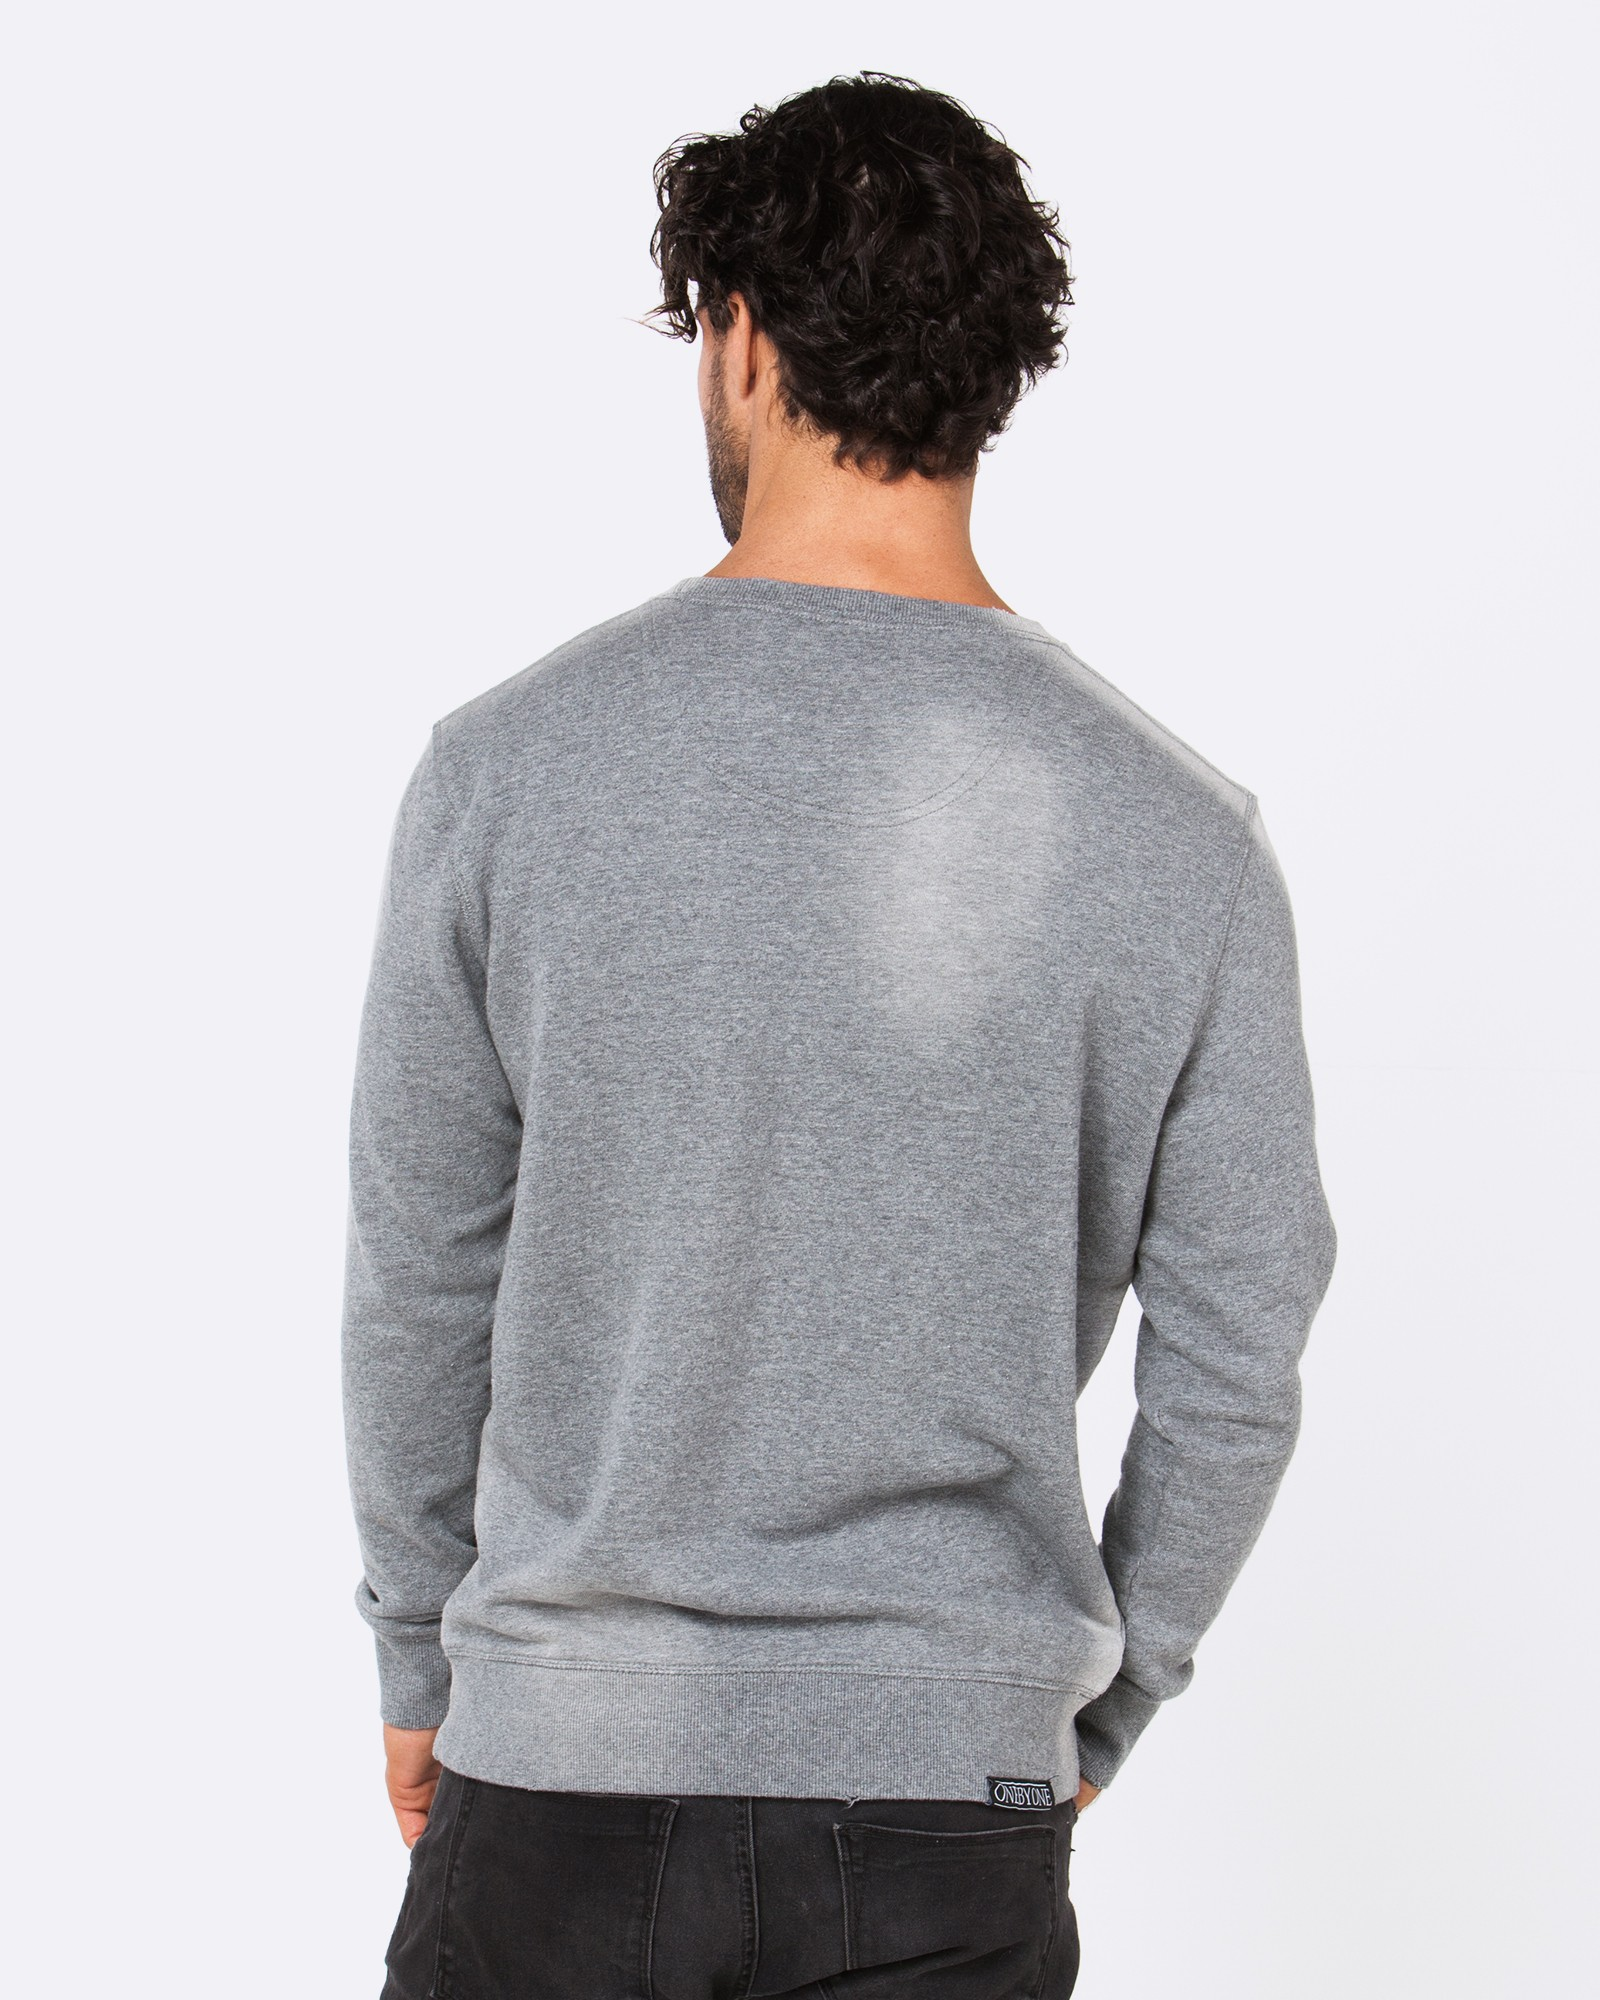 DARK TURNS TO LIGHT MARBLE GREY CREW